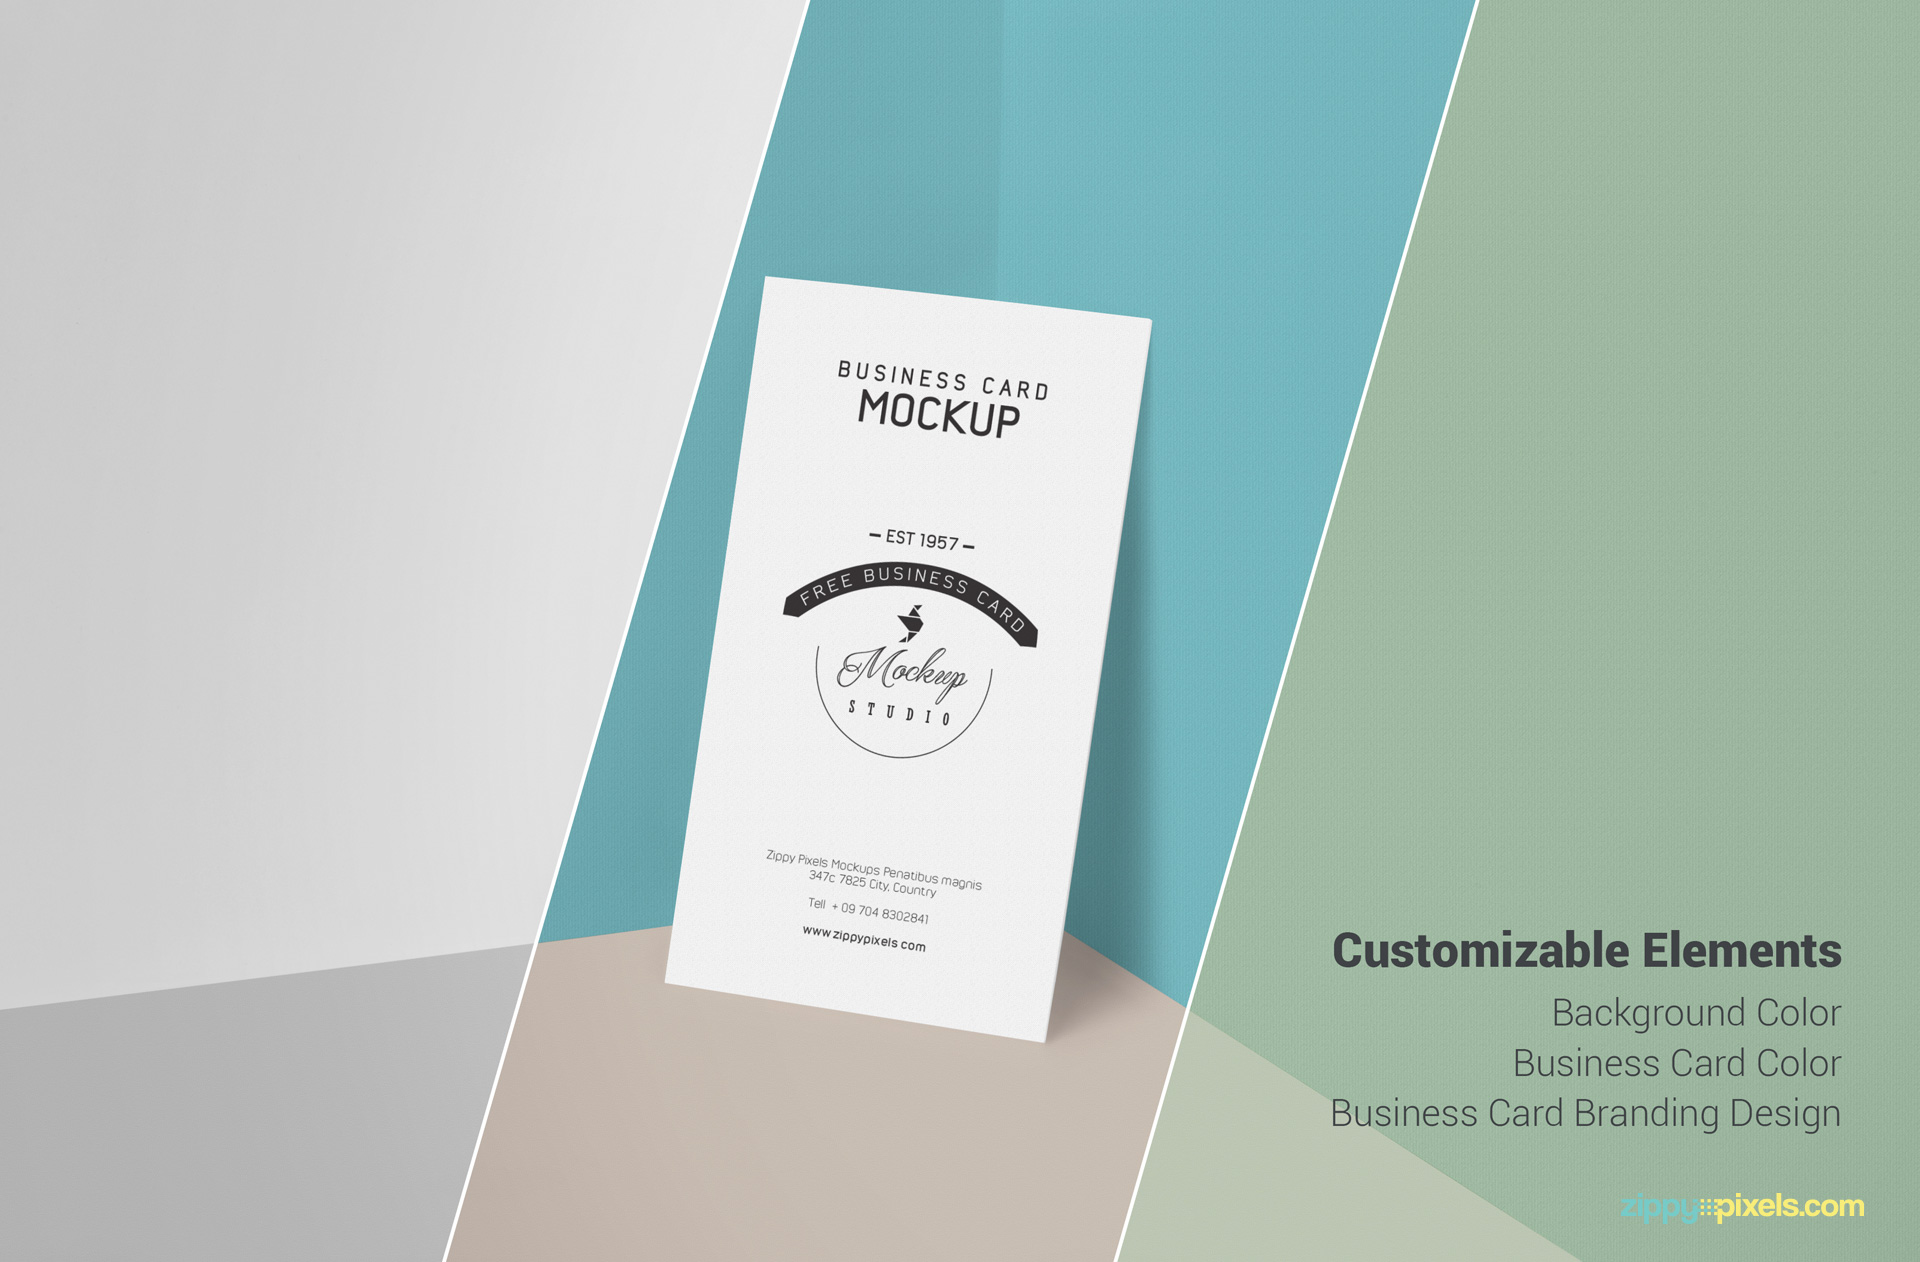 Free editable PSD business card mockup